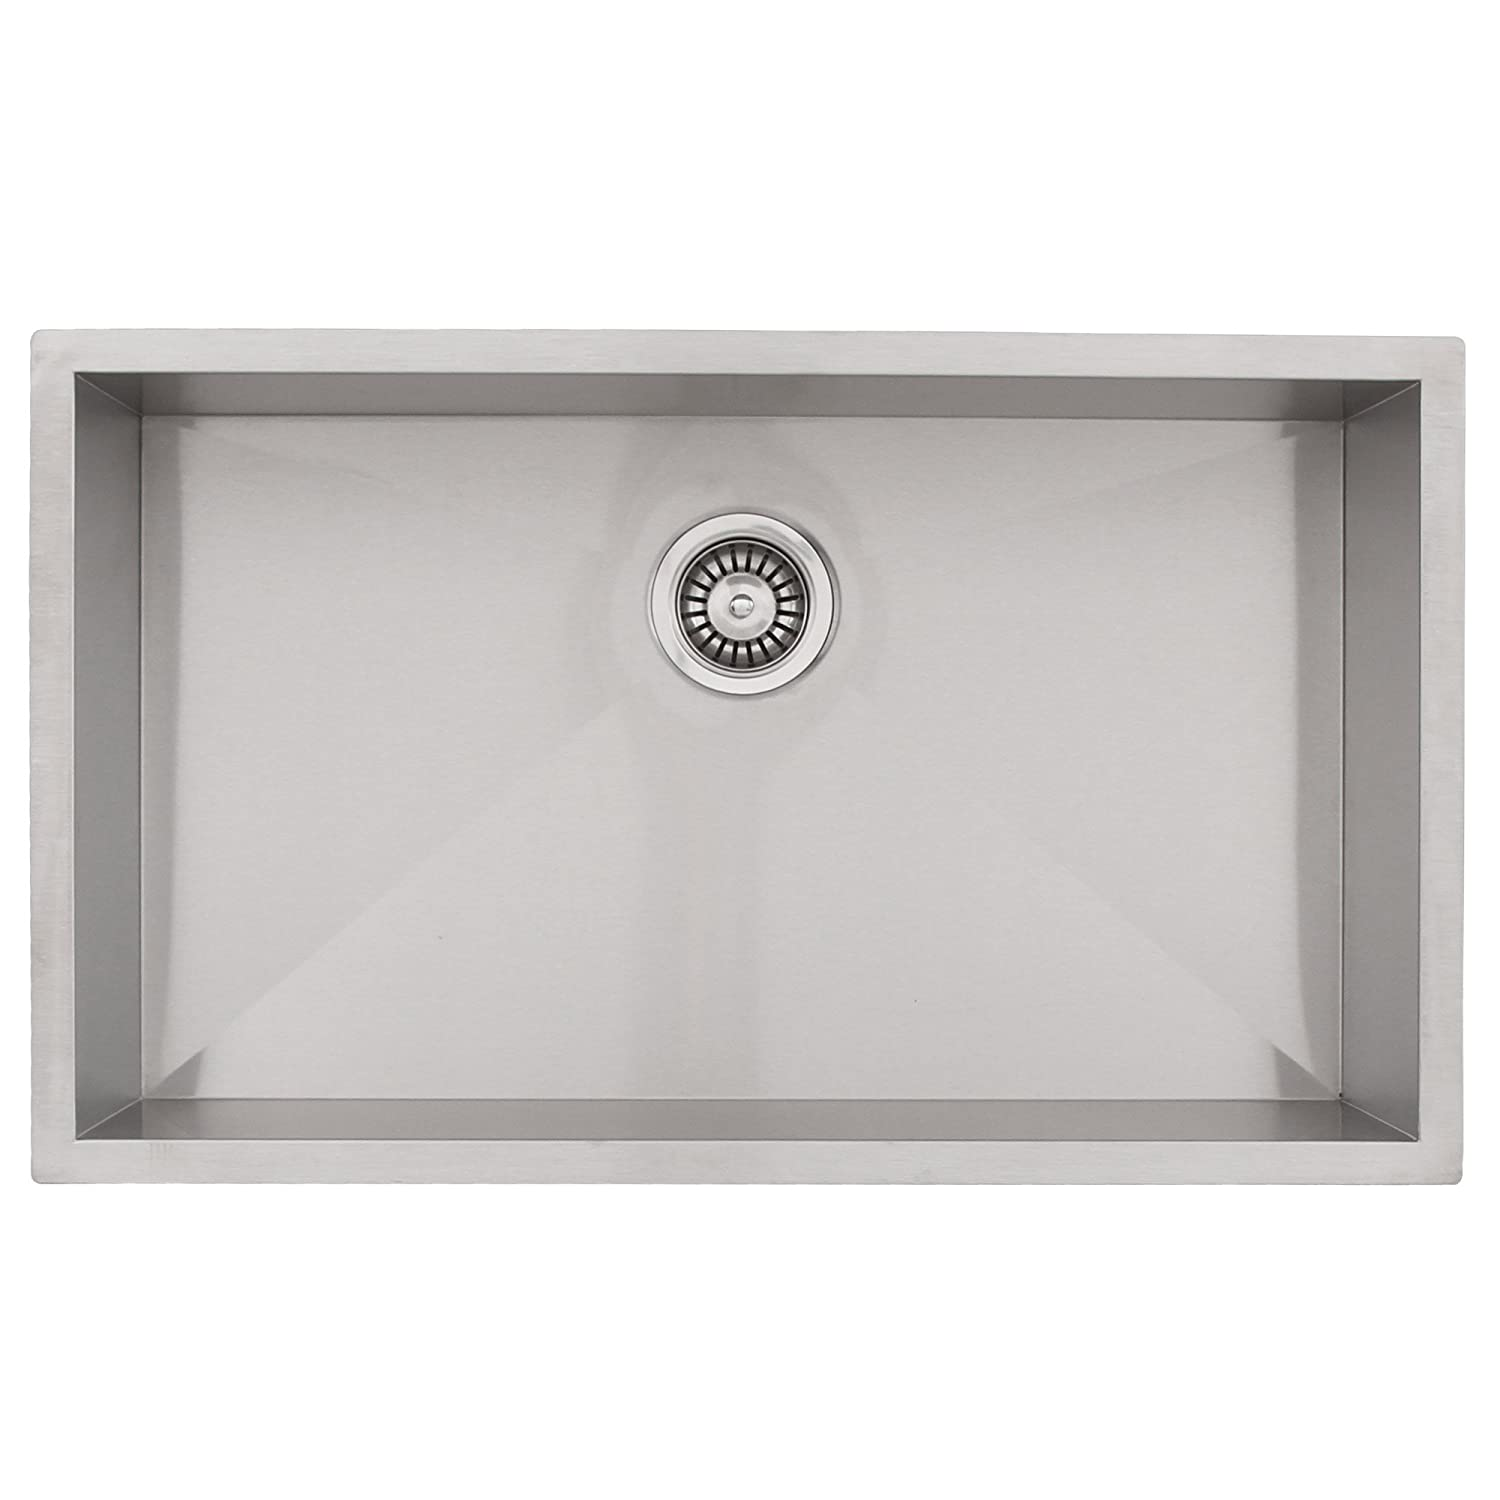 "Phoenix 36"" Undermount 16 Gauge Stainless Steel Square Kitchen Sink Zero Radius"